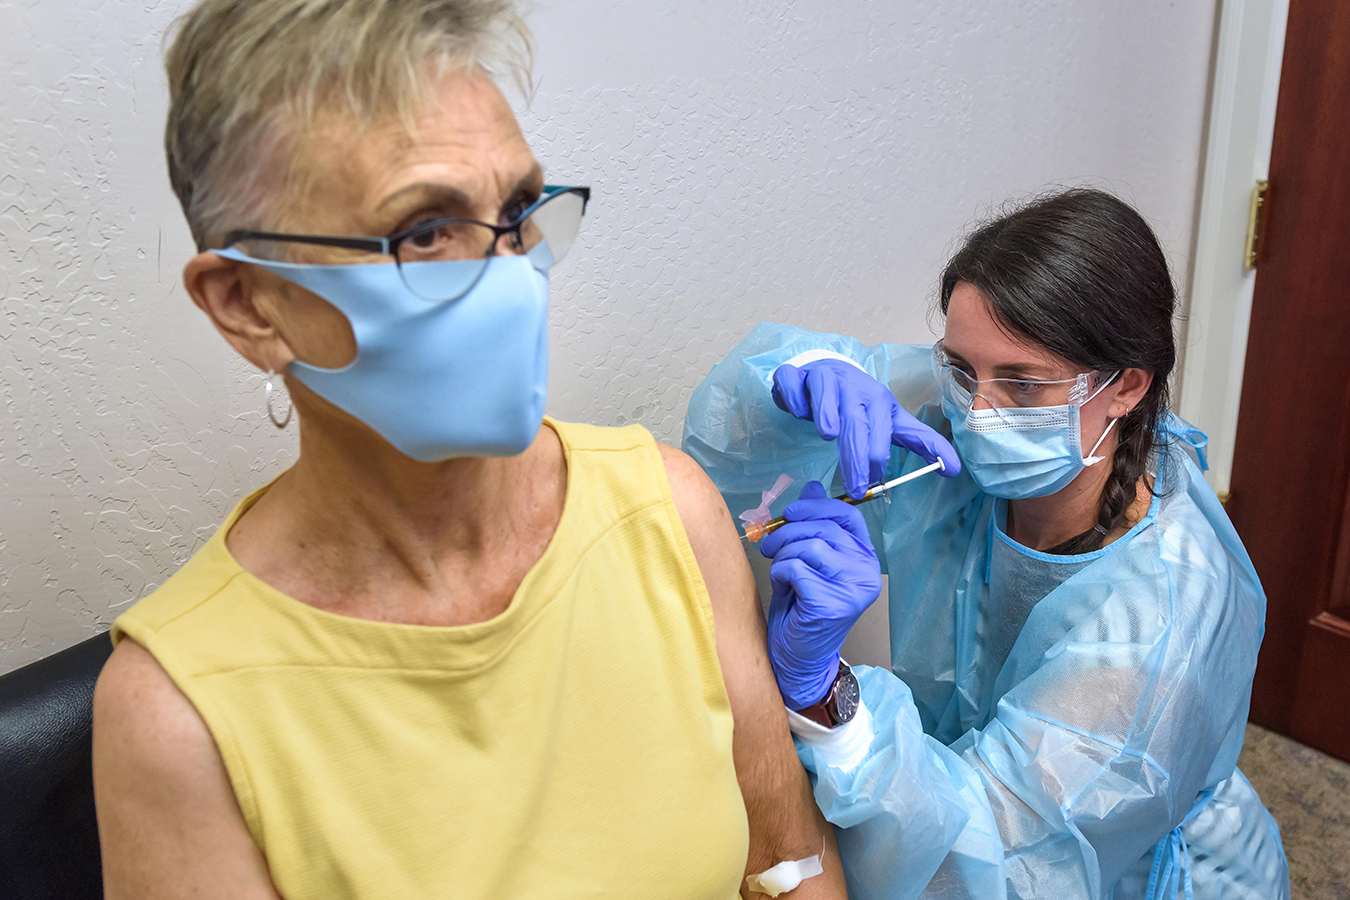 With COVID Vaccine Trial, Rural Oregon Clinic Steps Onto World Stage